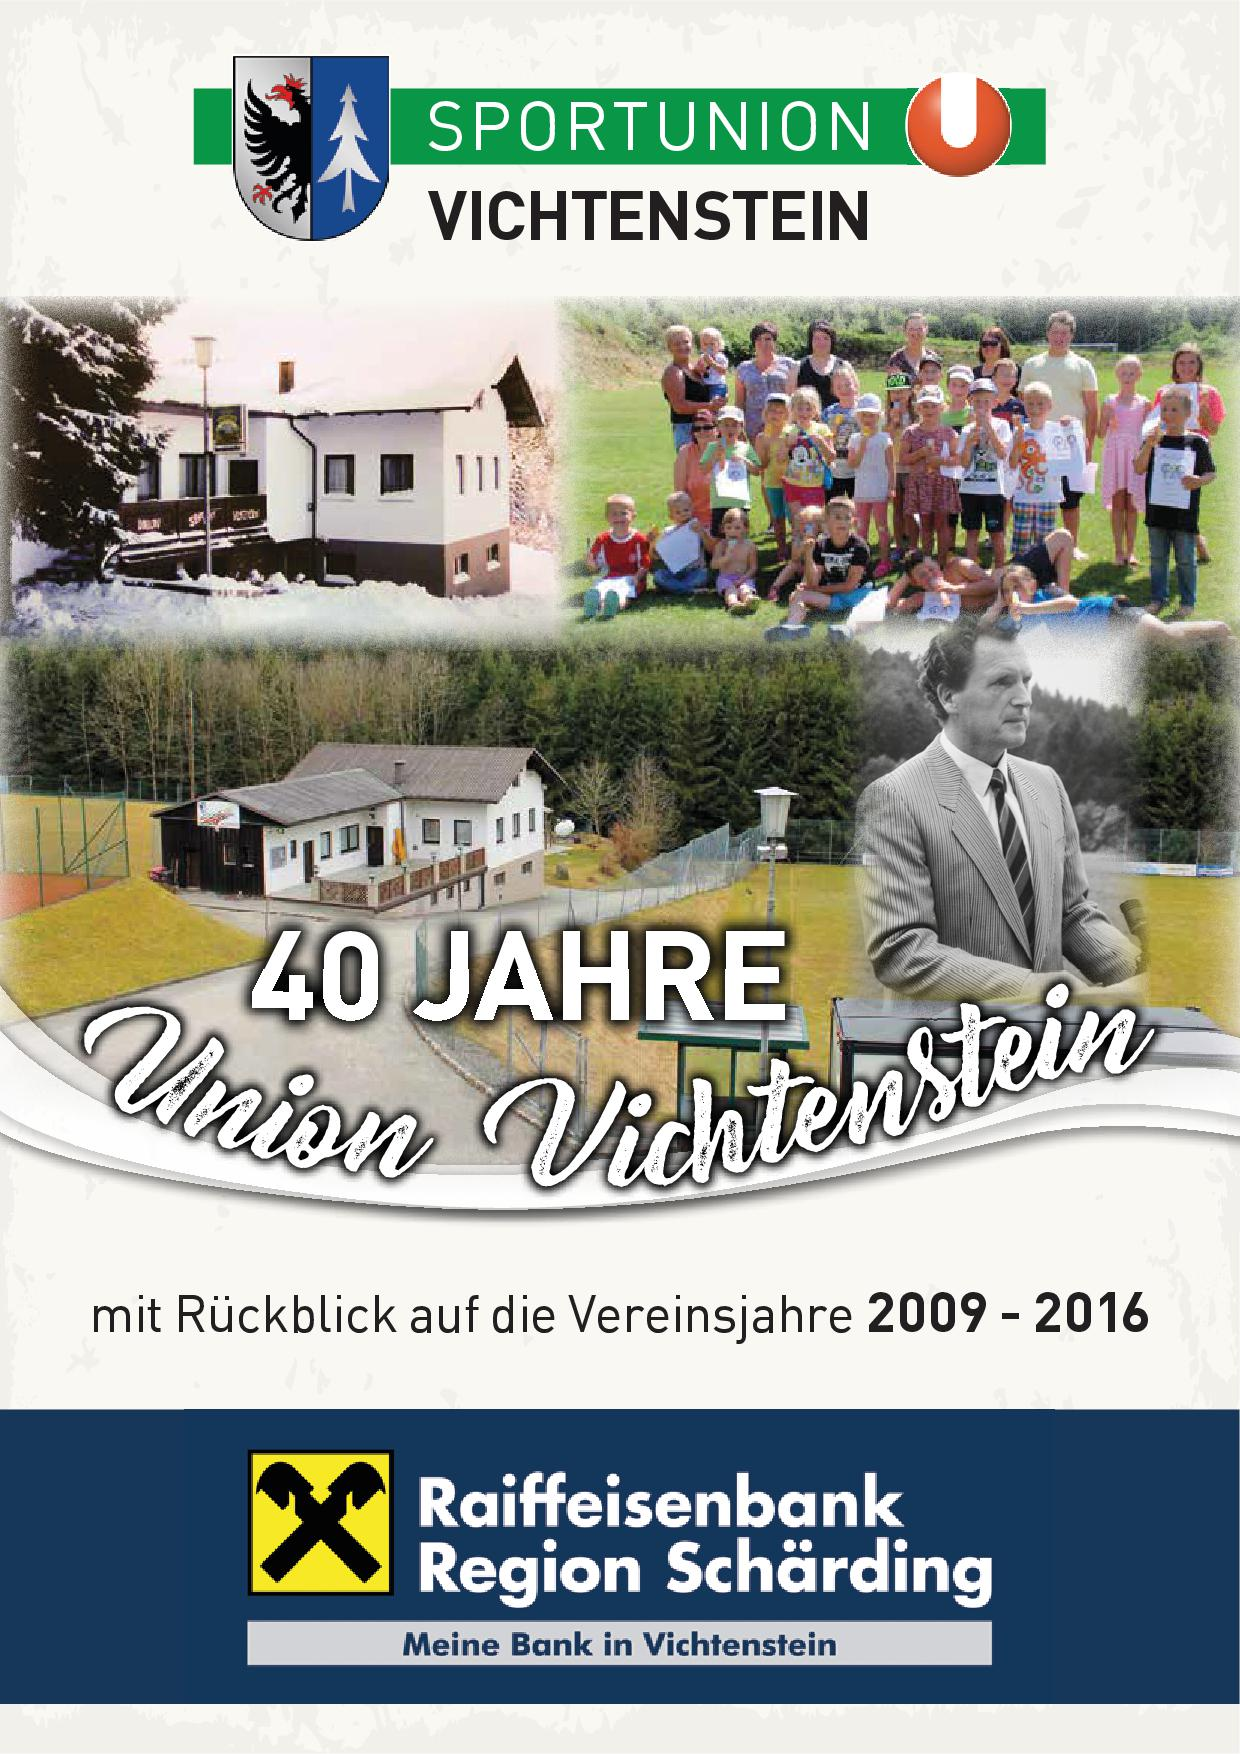 Titelblatt Vichtensteiner Union Post 201701